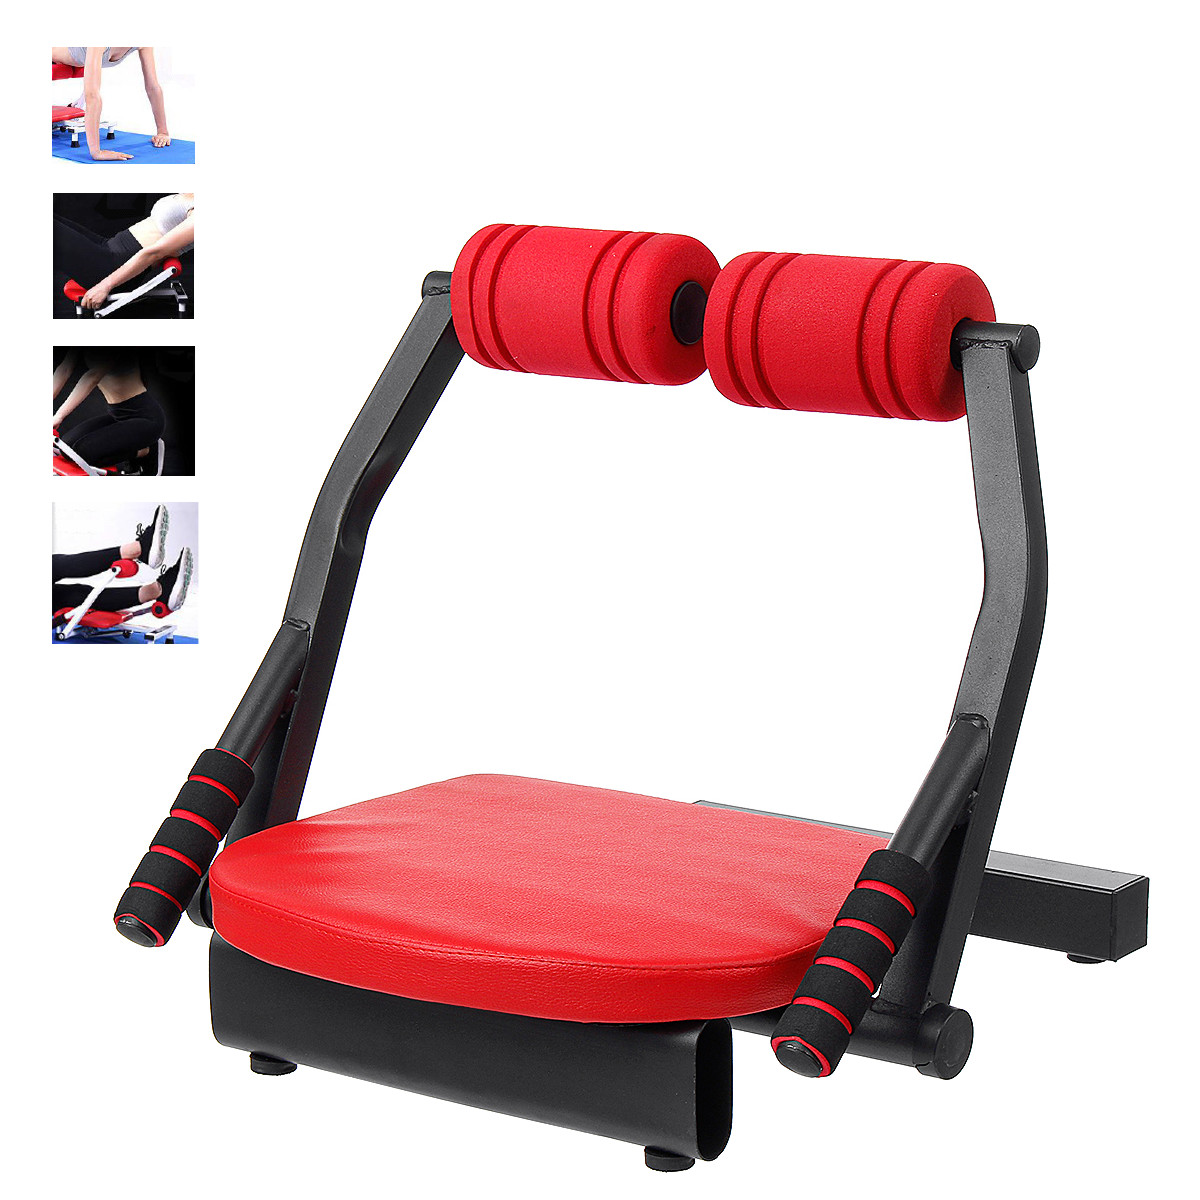 Core Smart Fitness Equipment AB Exercise Trainer Full Body